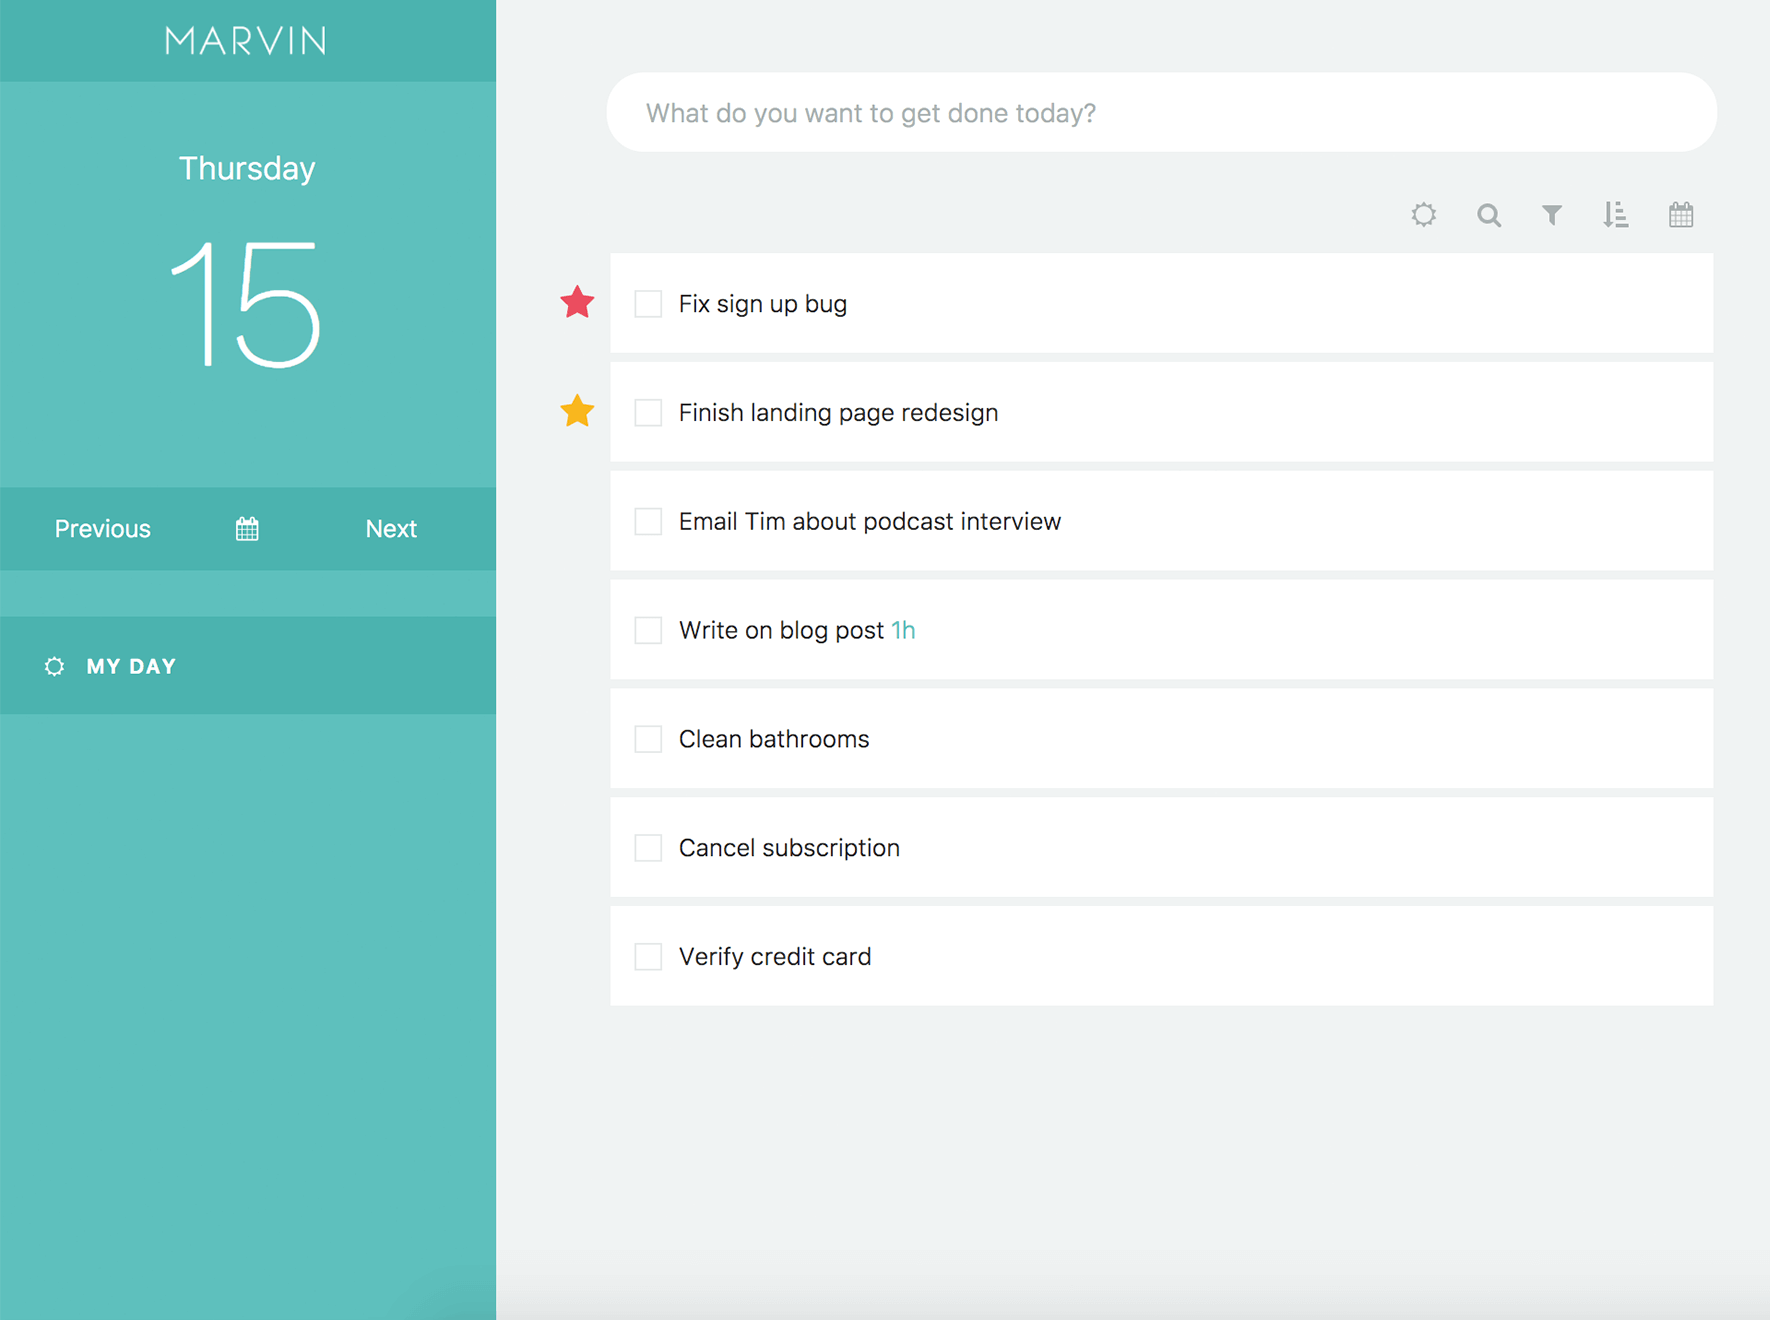 Amazing Marvin time management app